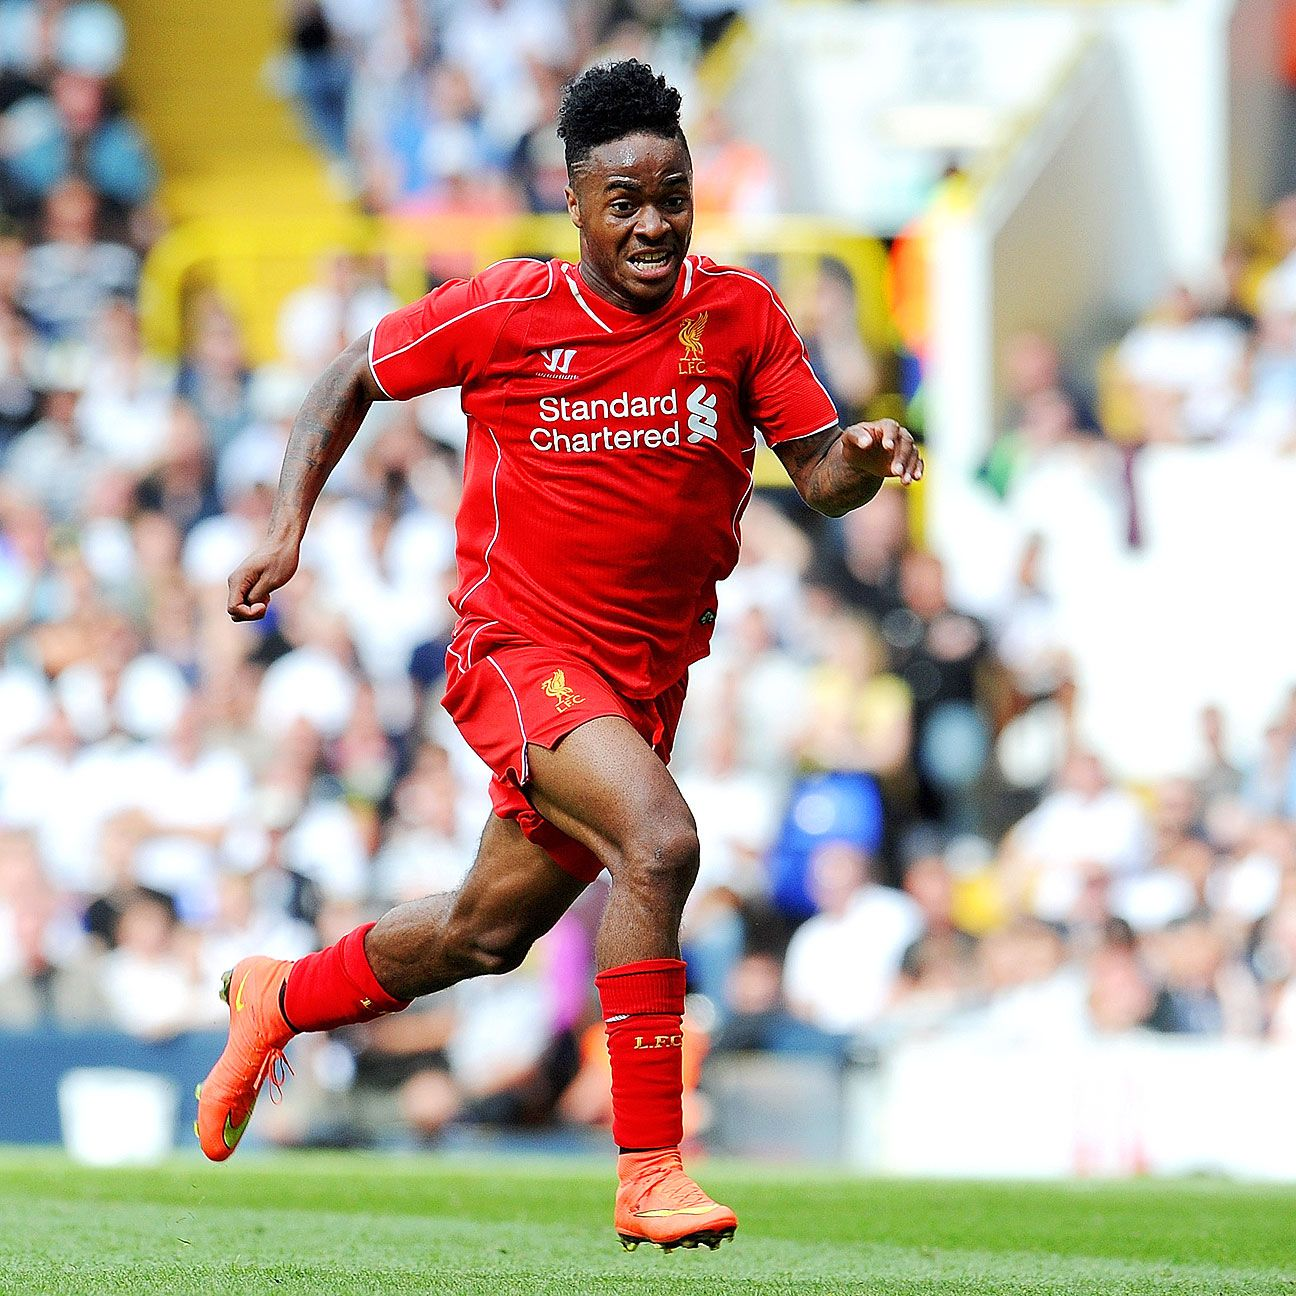 Raheem Sterling's direct style of counter-attacking should aid Manchester City in 2015-16.